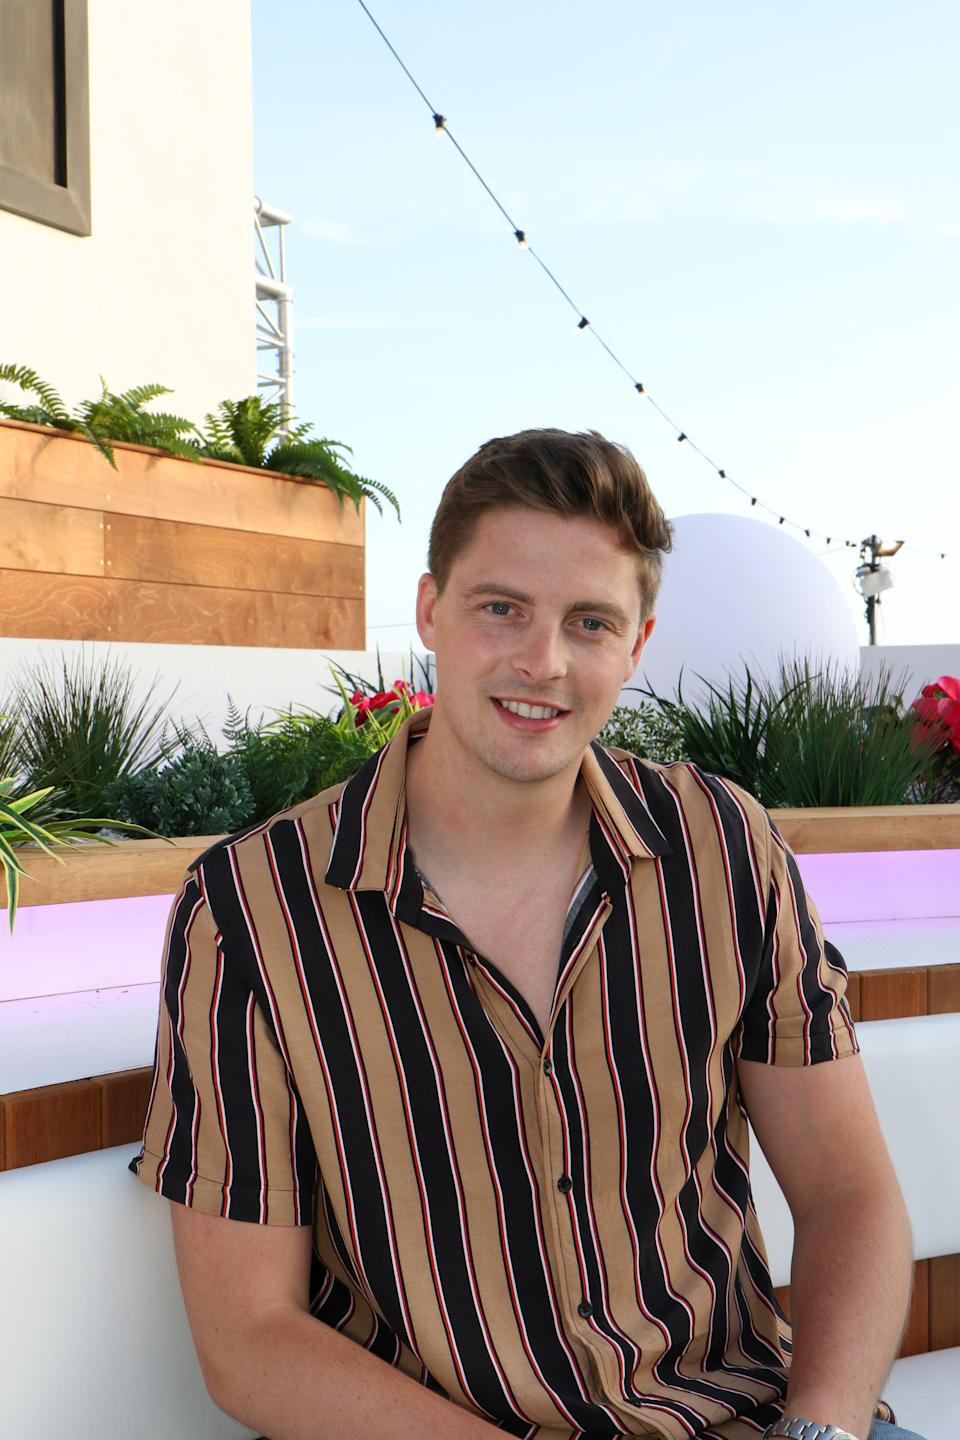 Dr Alex George, a contestant on series 4 of the ITV2 reality television show 'Love Island', 2018. (Photo by Tim Roney/Getty Images)